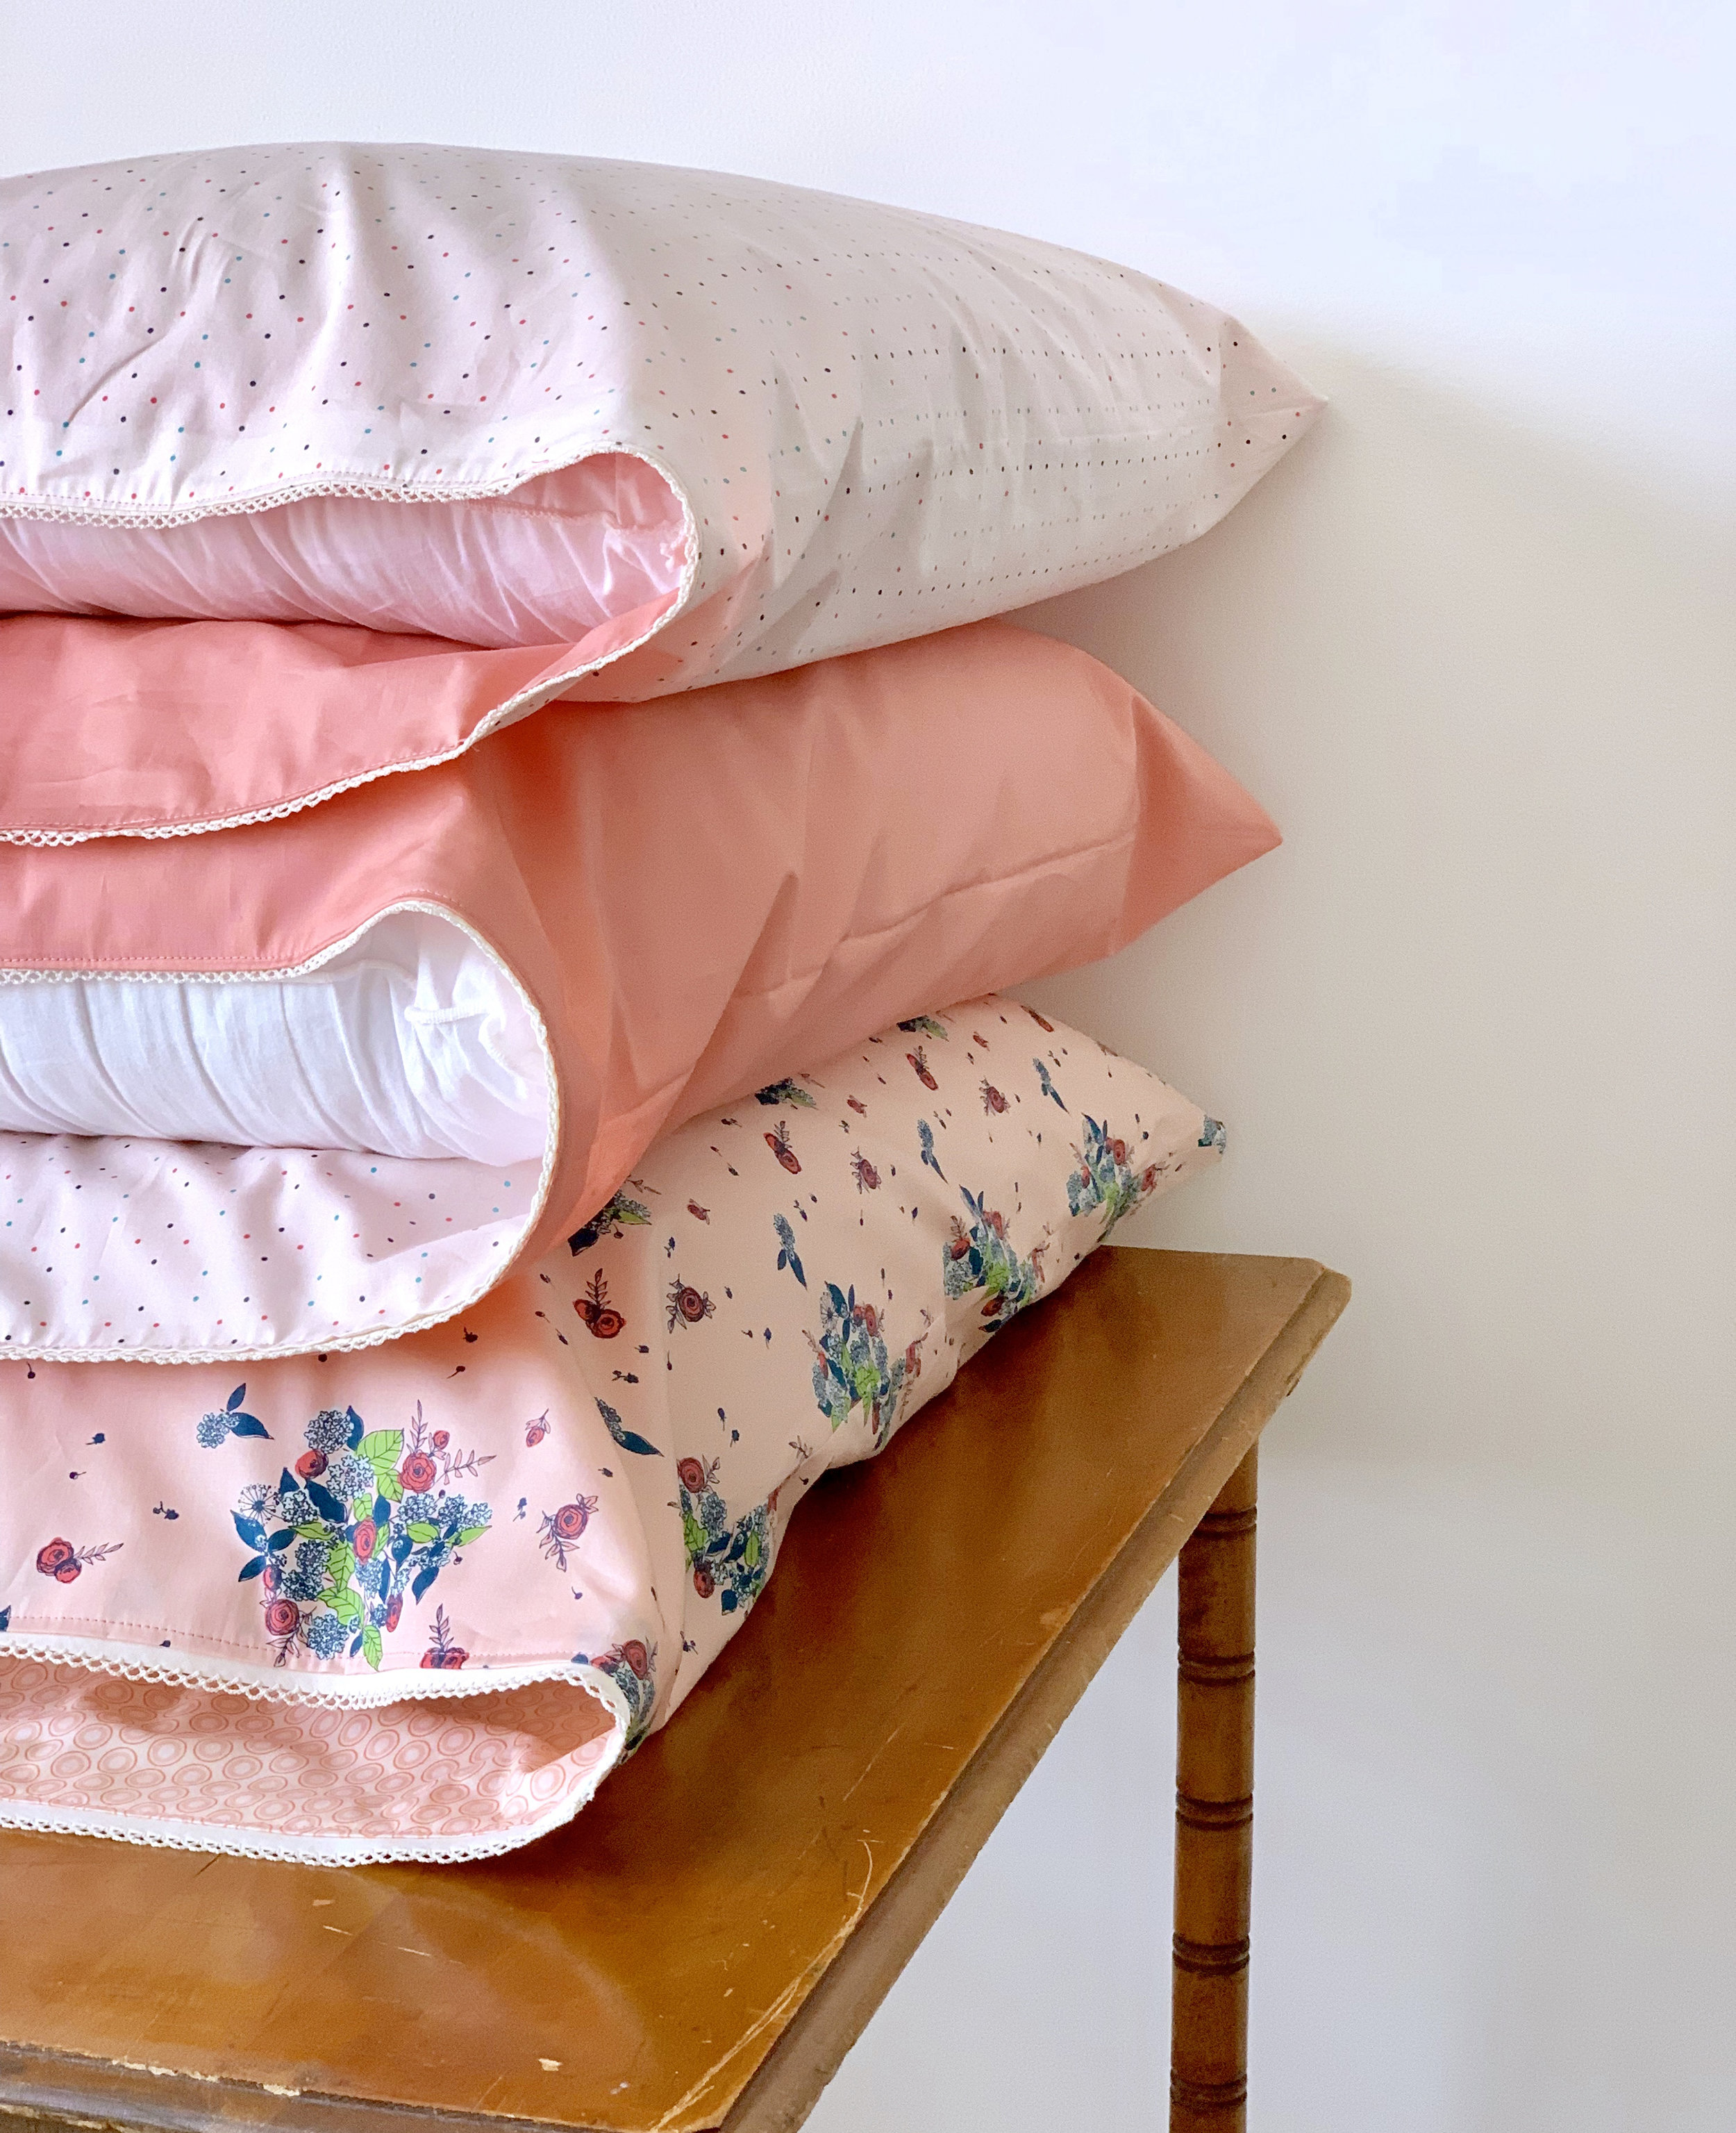 Reversible Pillow Case tutorial by Tidbits made by Sharon Holland